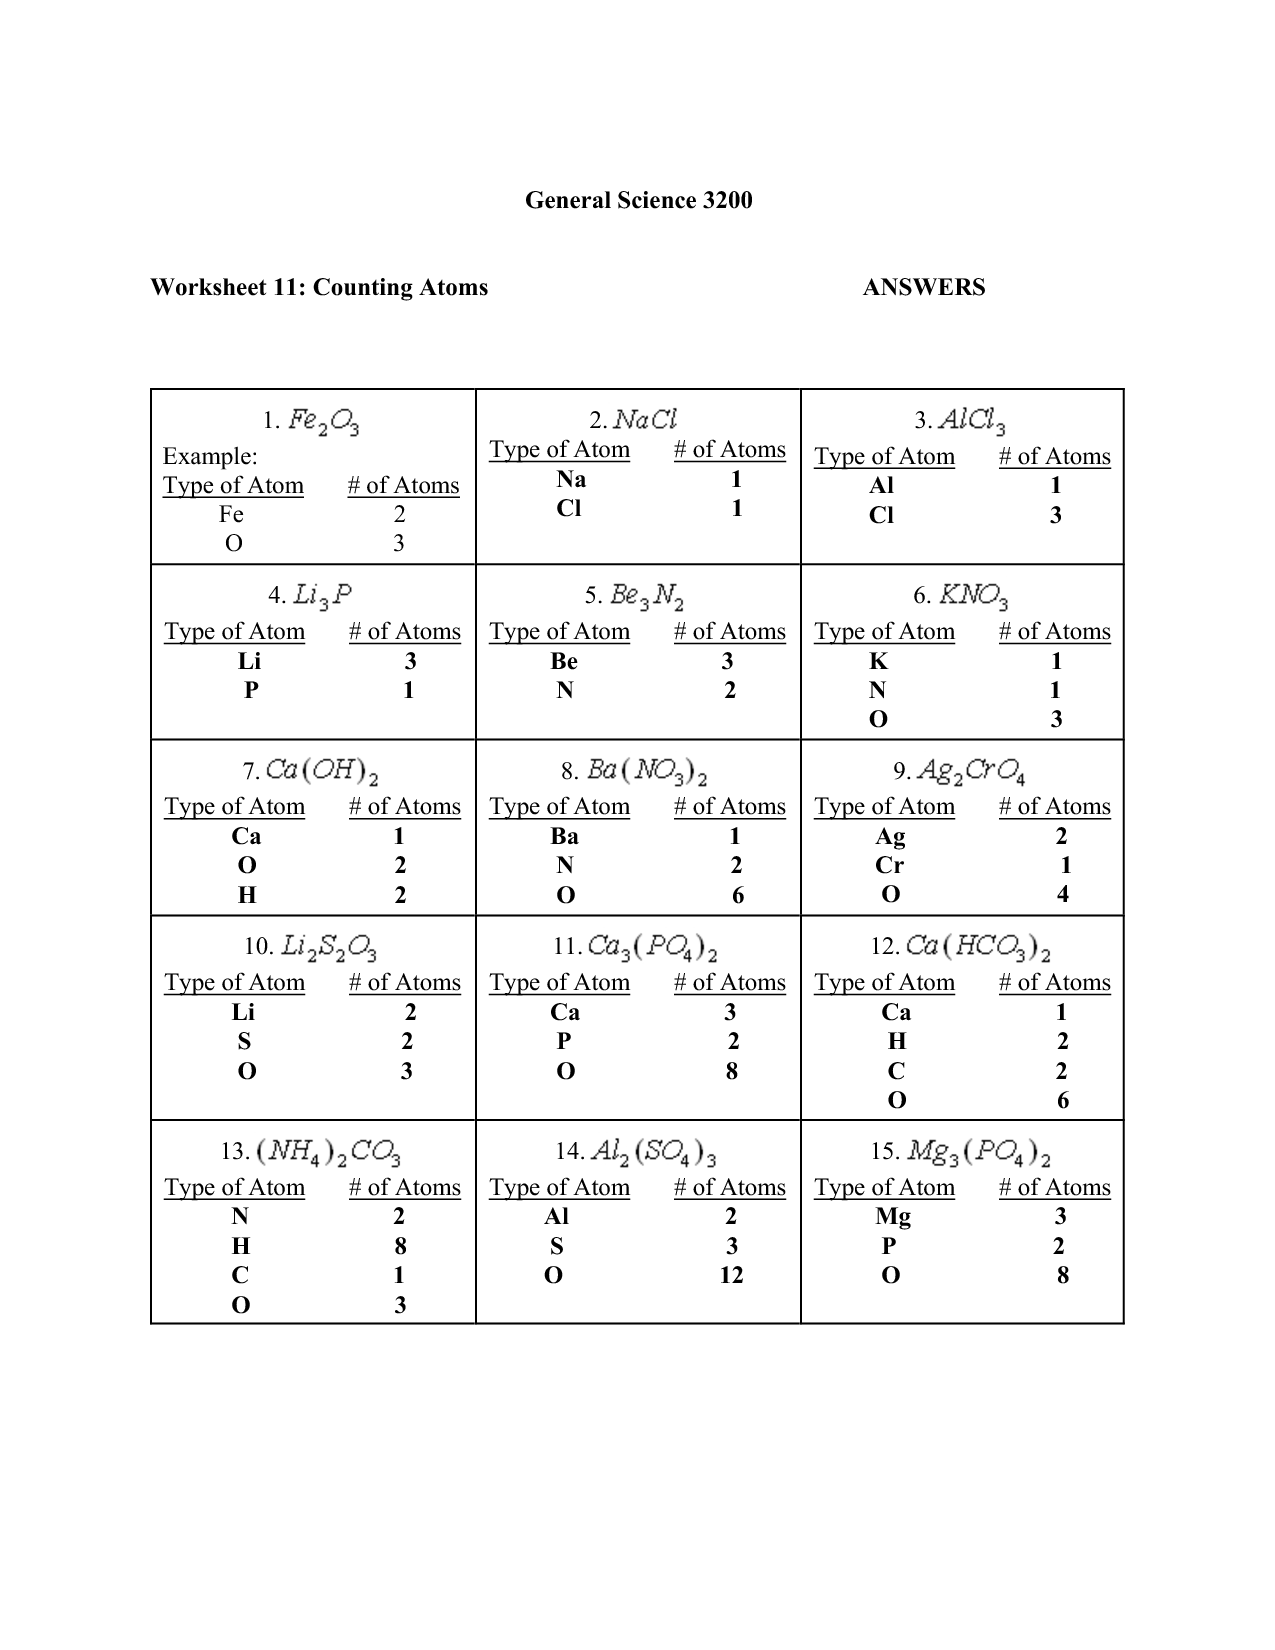 Counting Atoms Worksheet With Answers